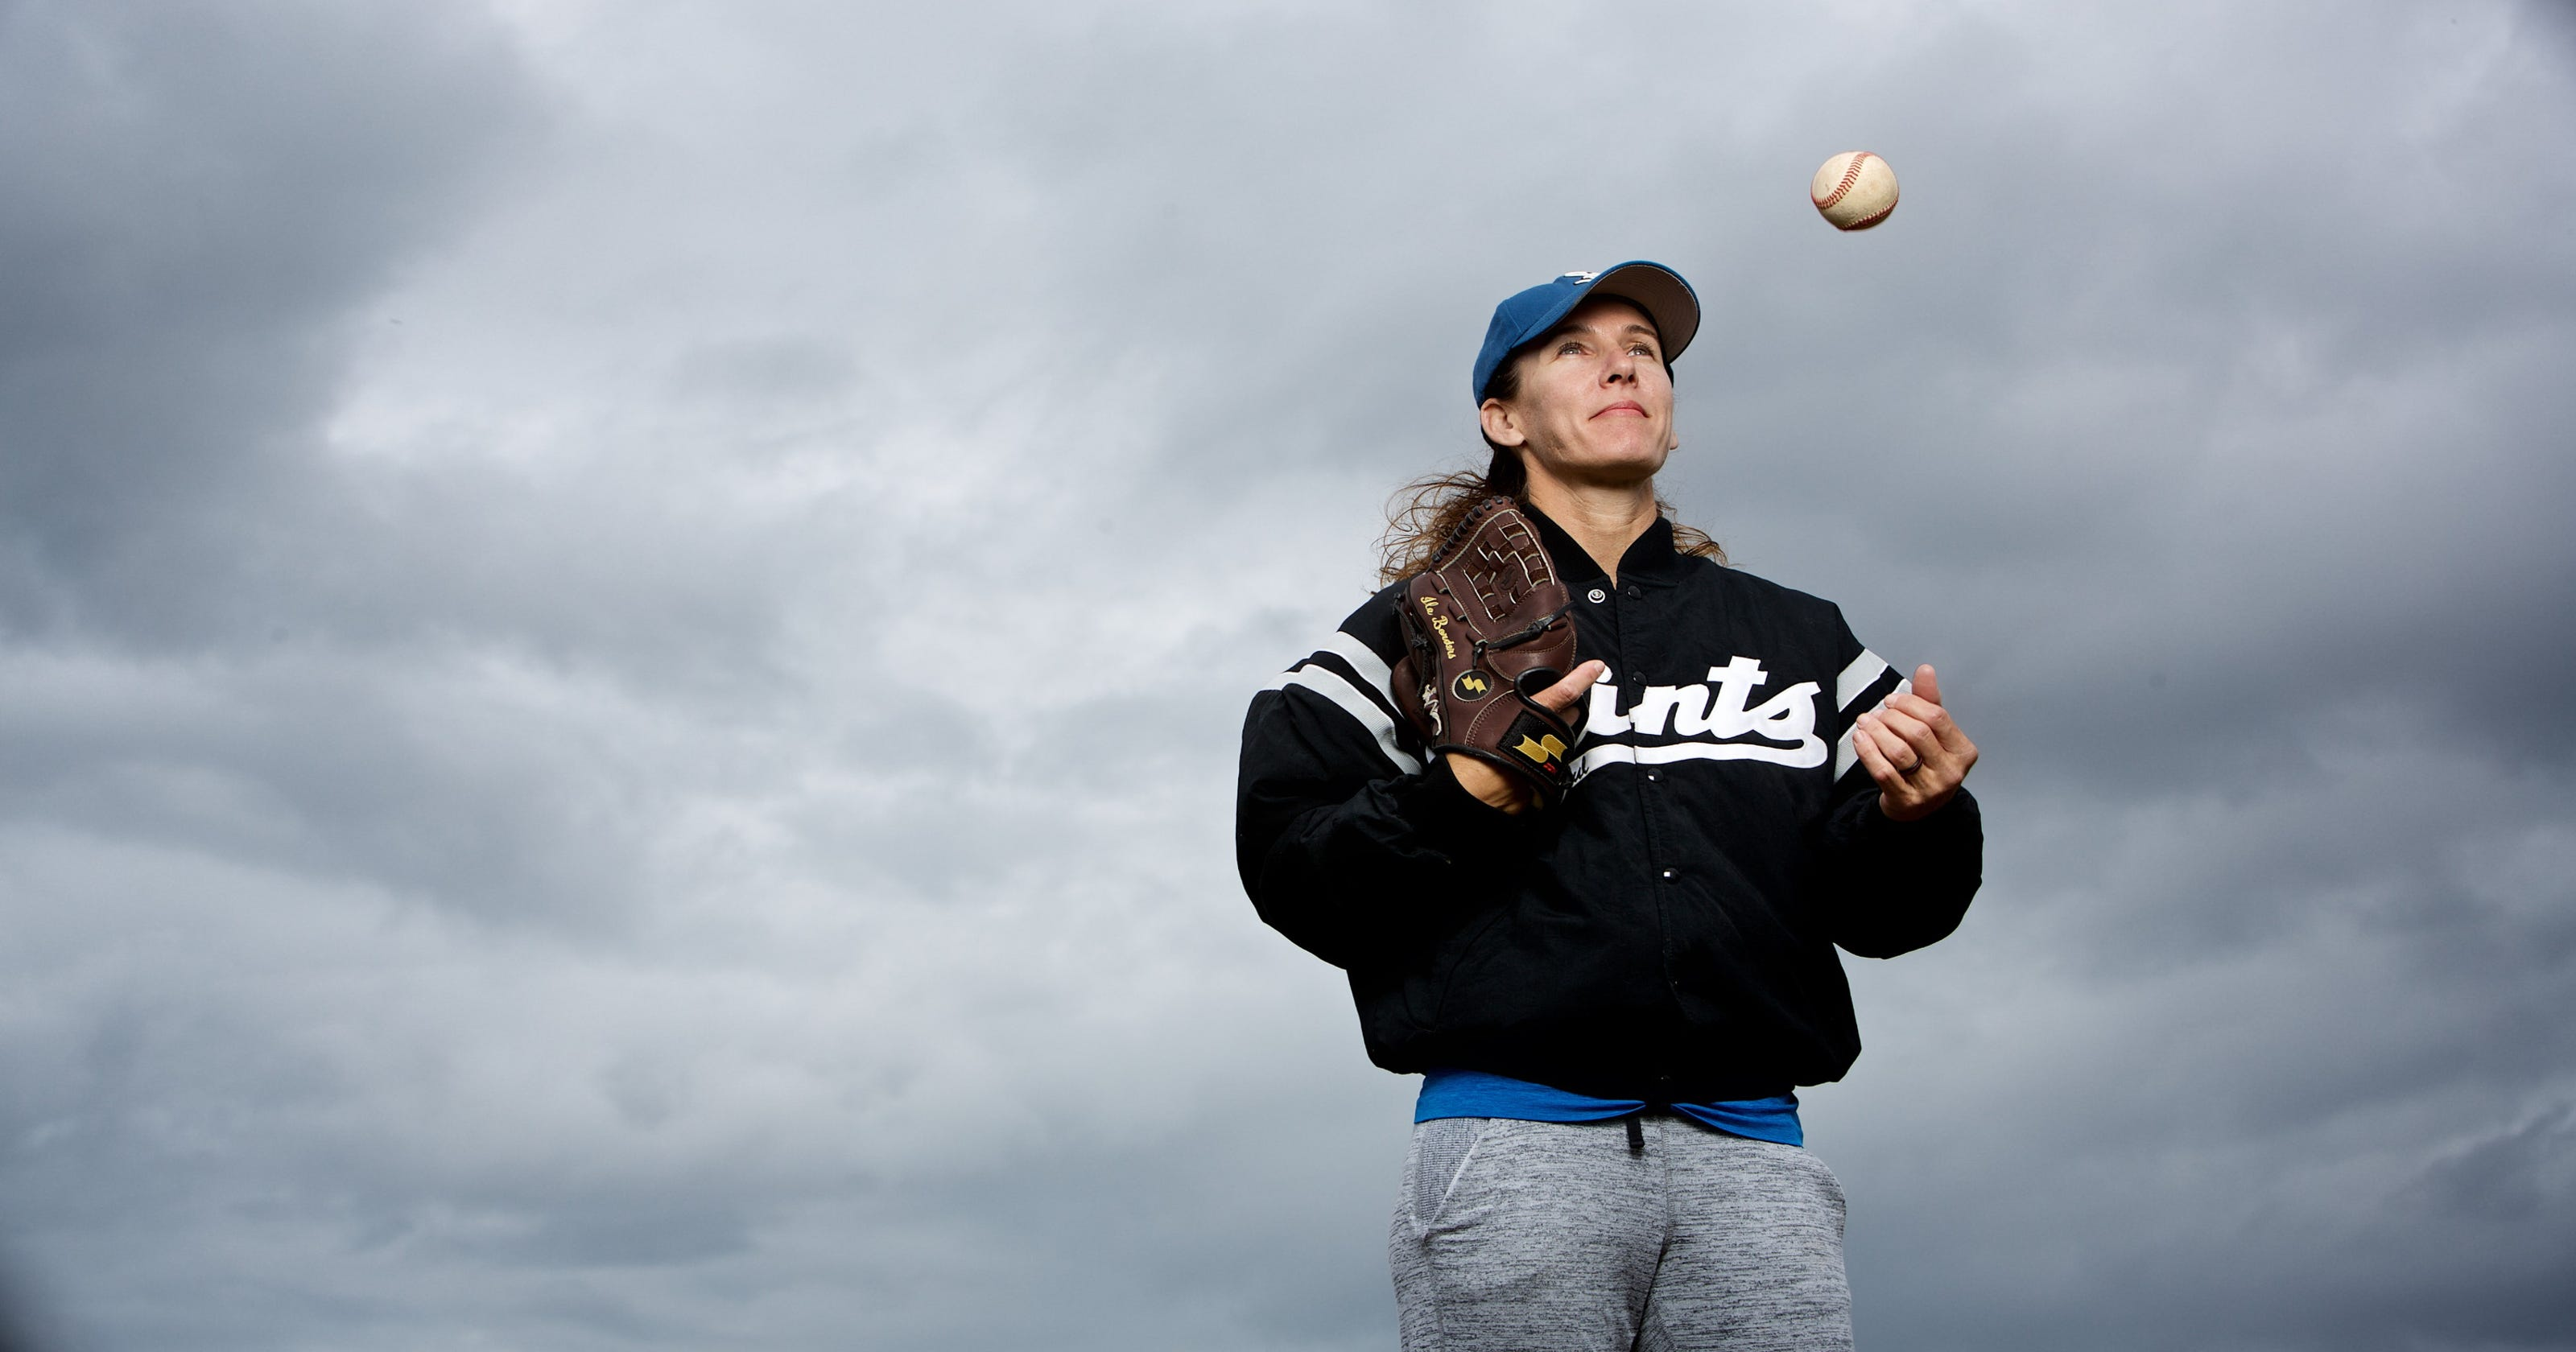 For women playing baseball, acceptance grows as they attack